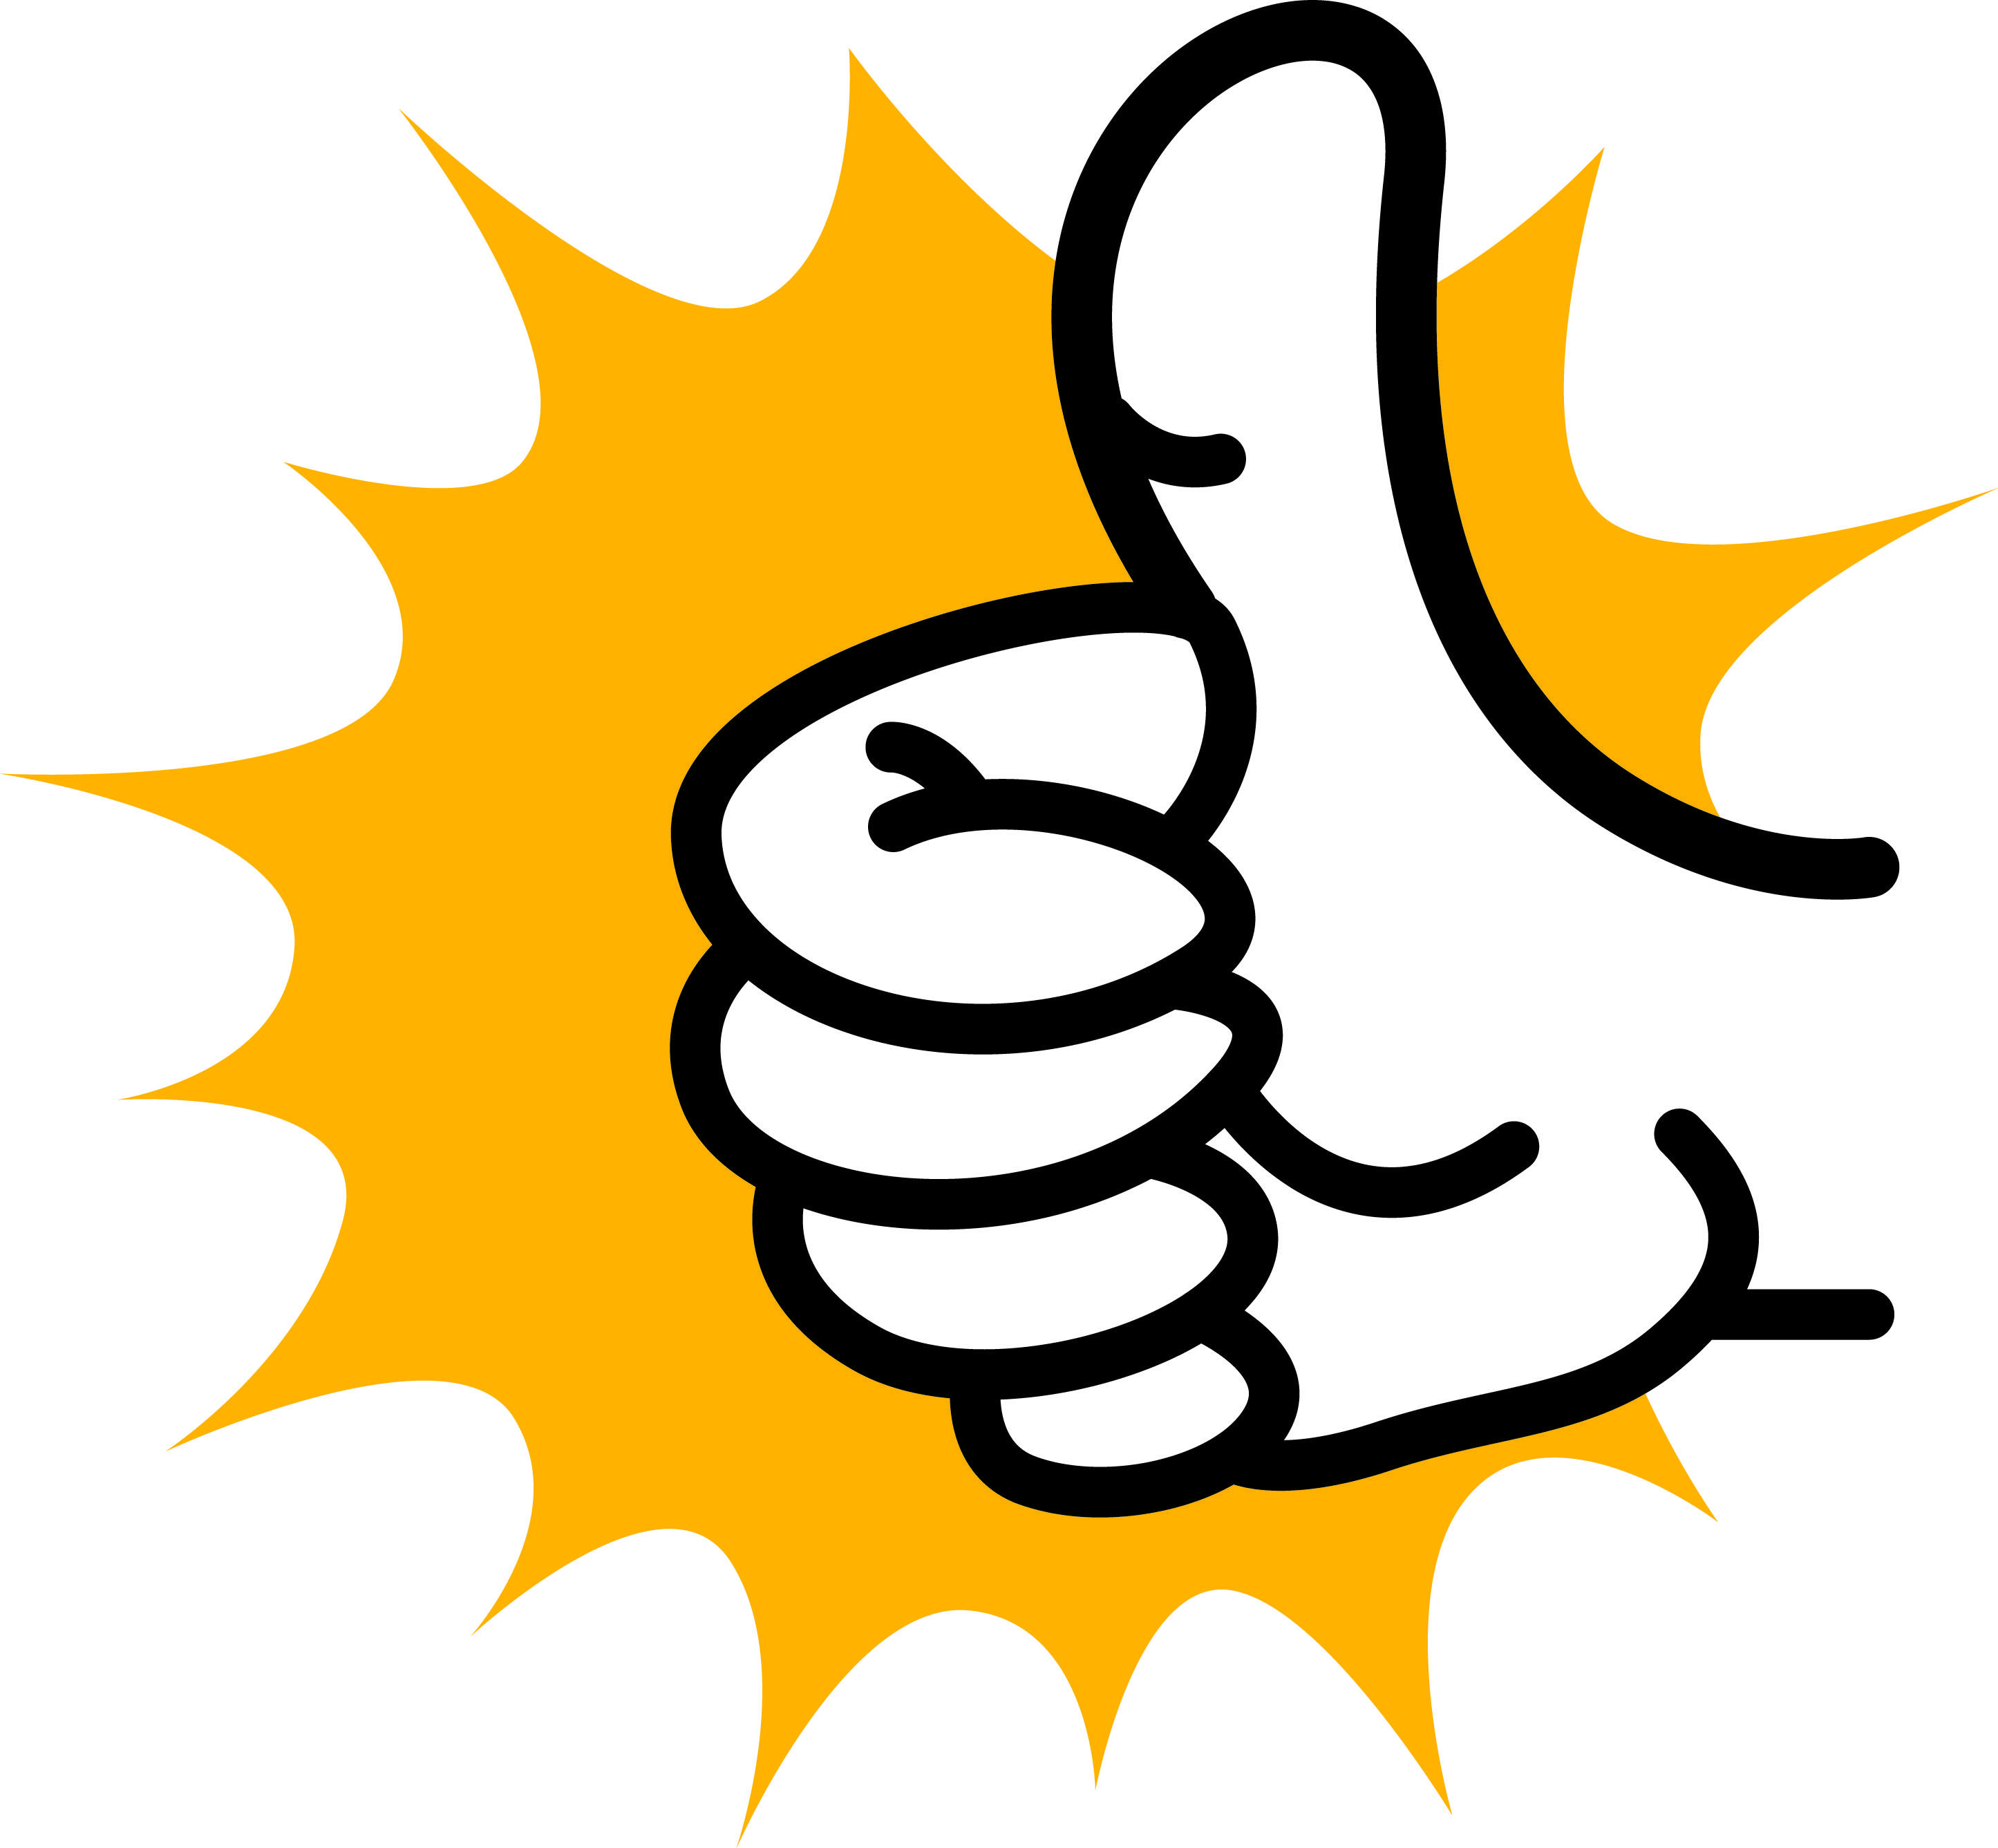 Thumbs Up Clipart Transparent Background.